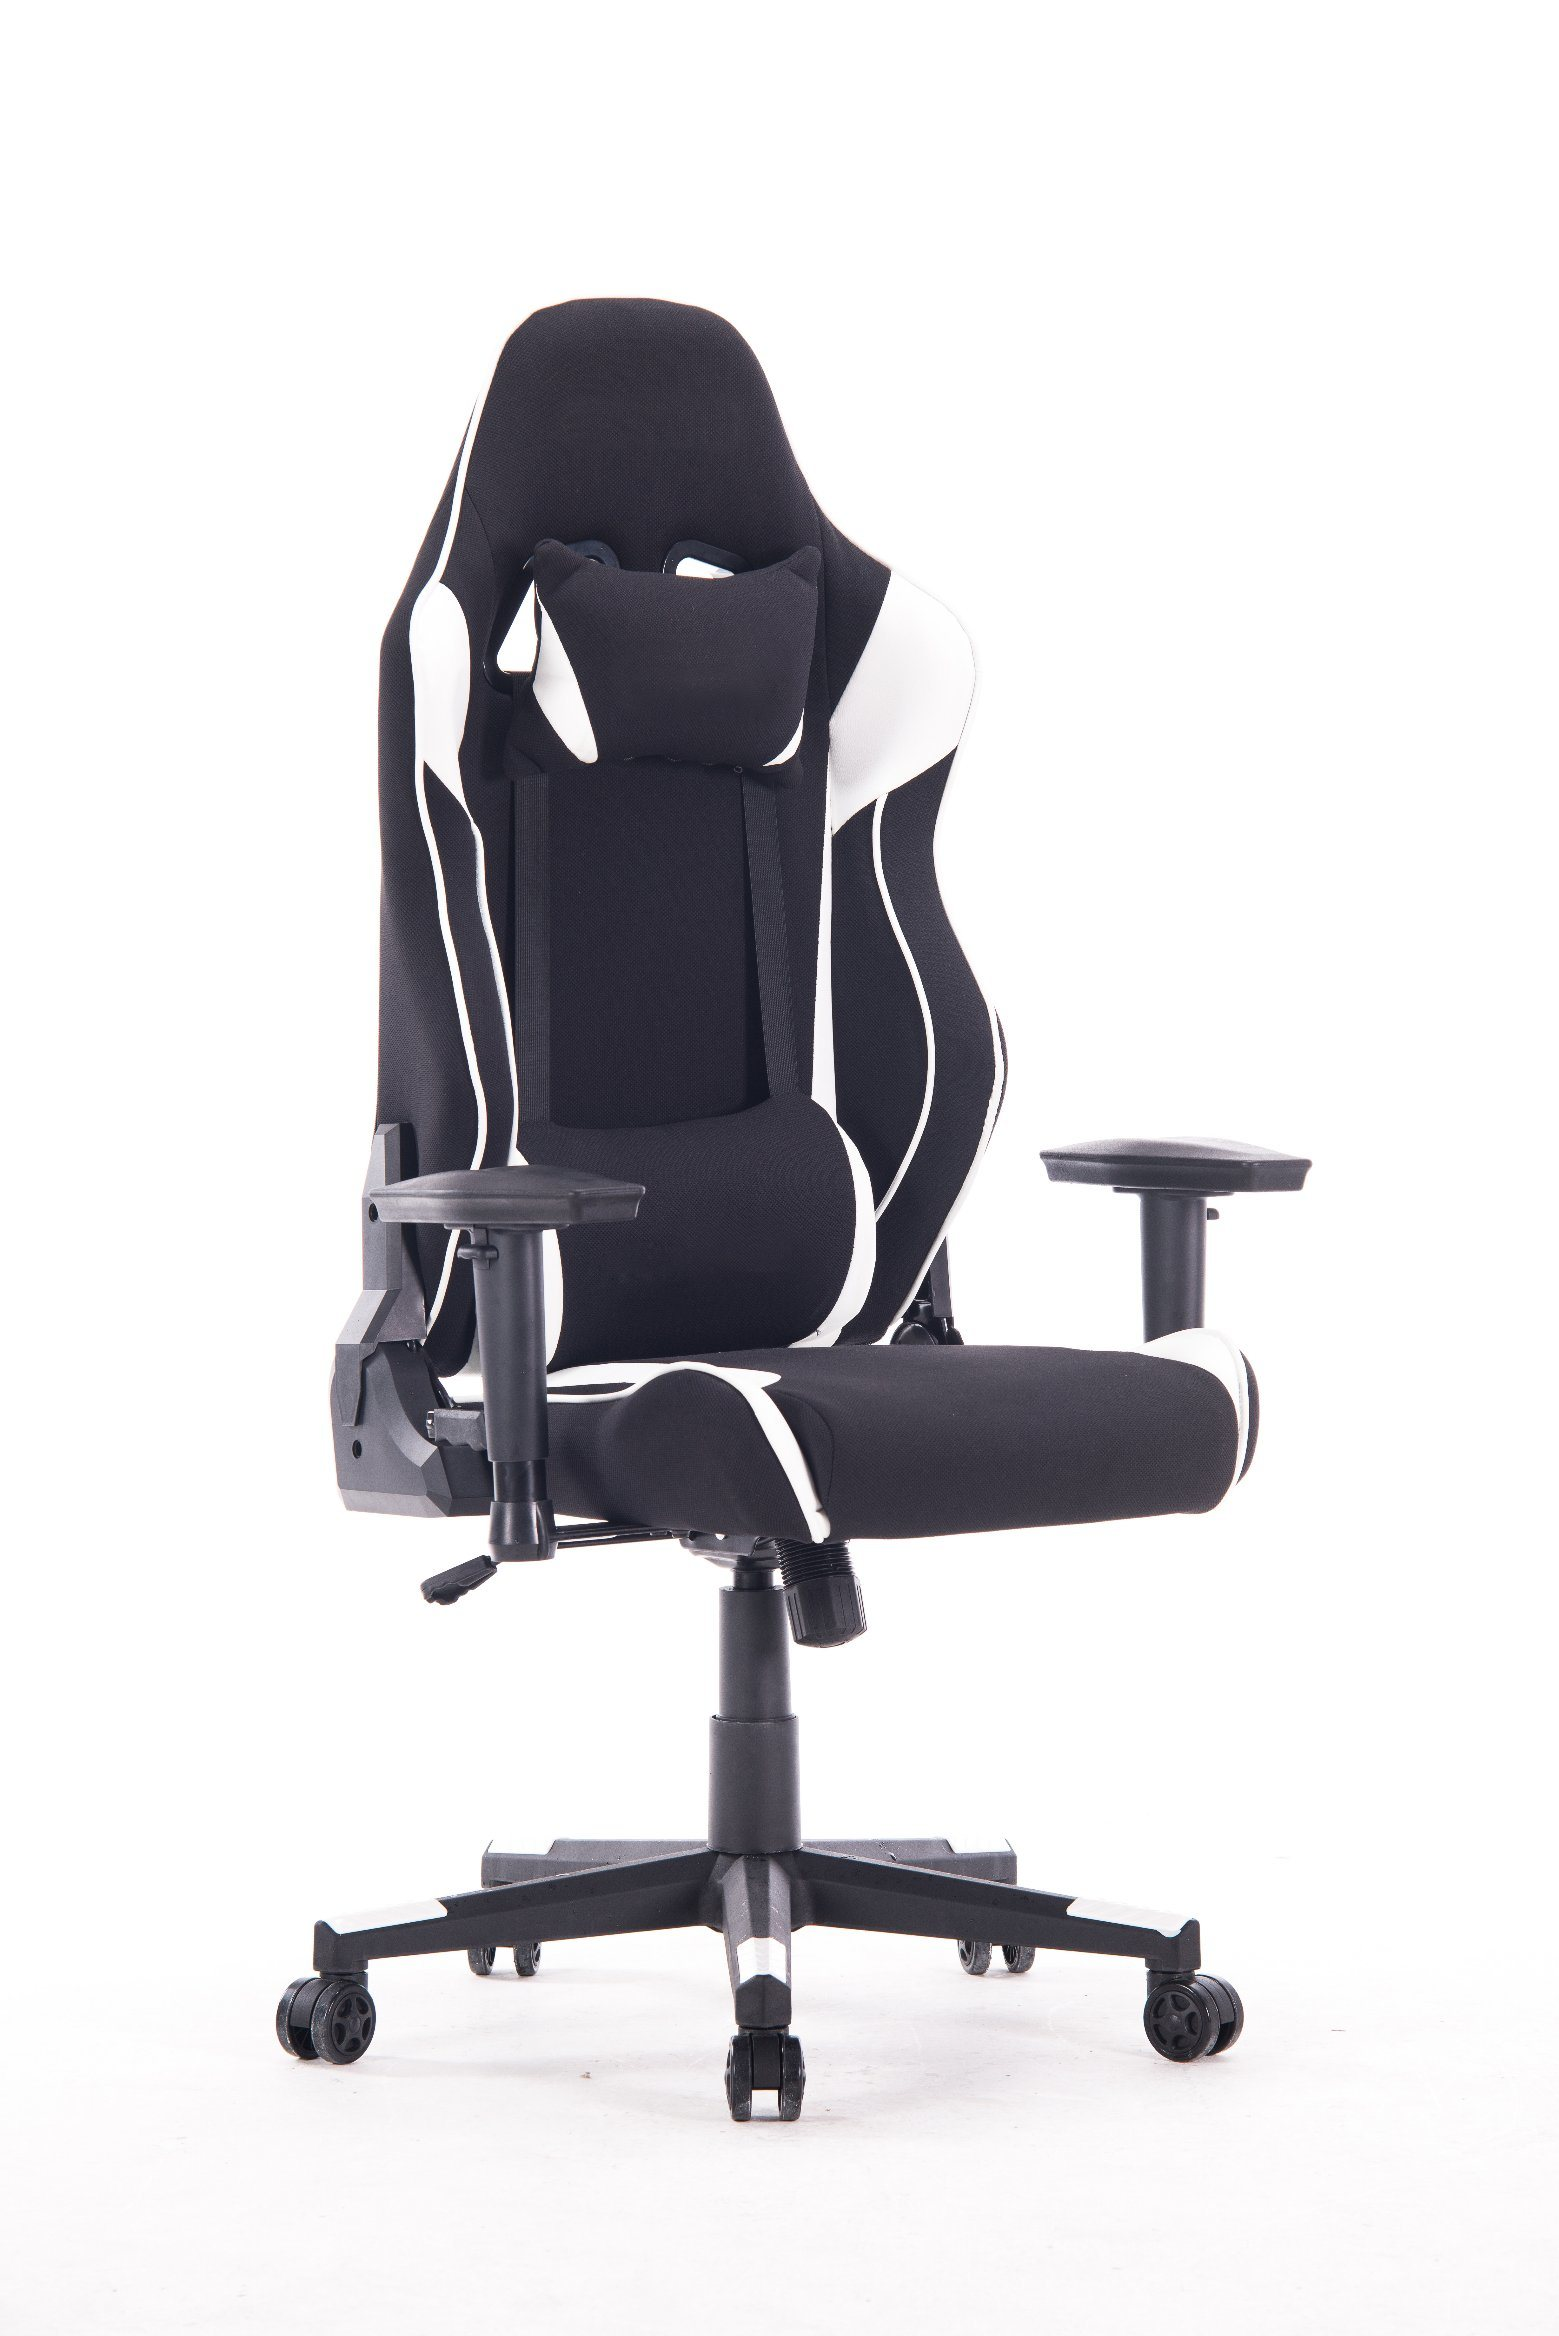 Racing Seat Office Chair Hot Item Sturdy Metal Frame And Swivel Office Gamer Racing Seat Computer Gaming E Sport Chair